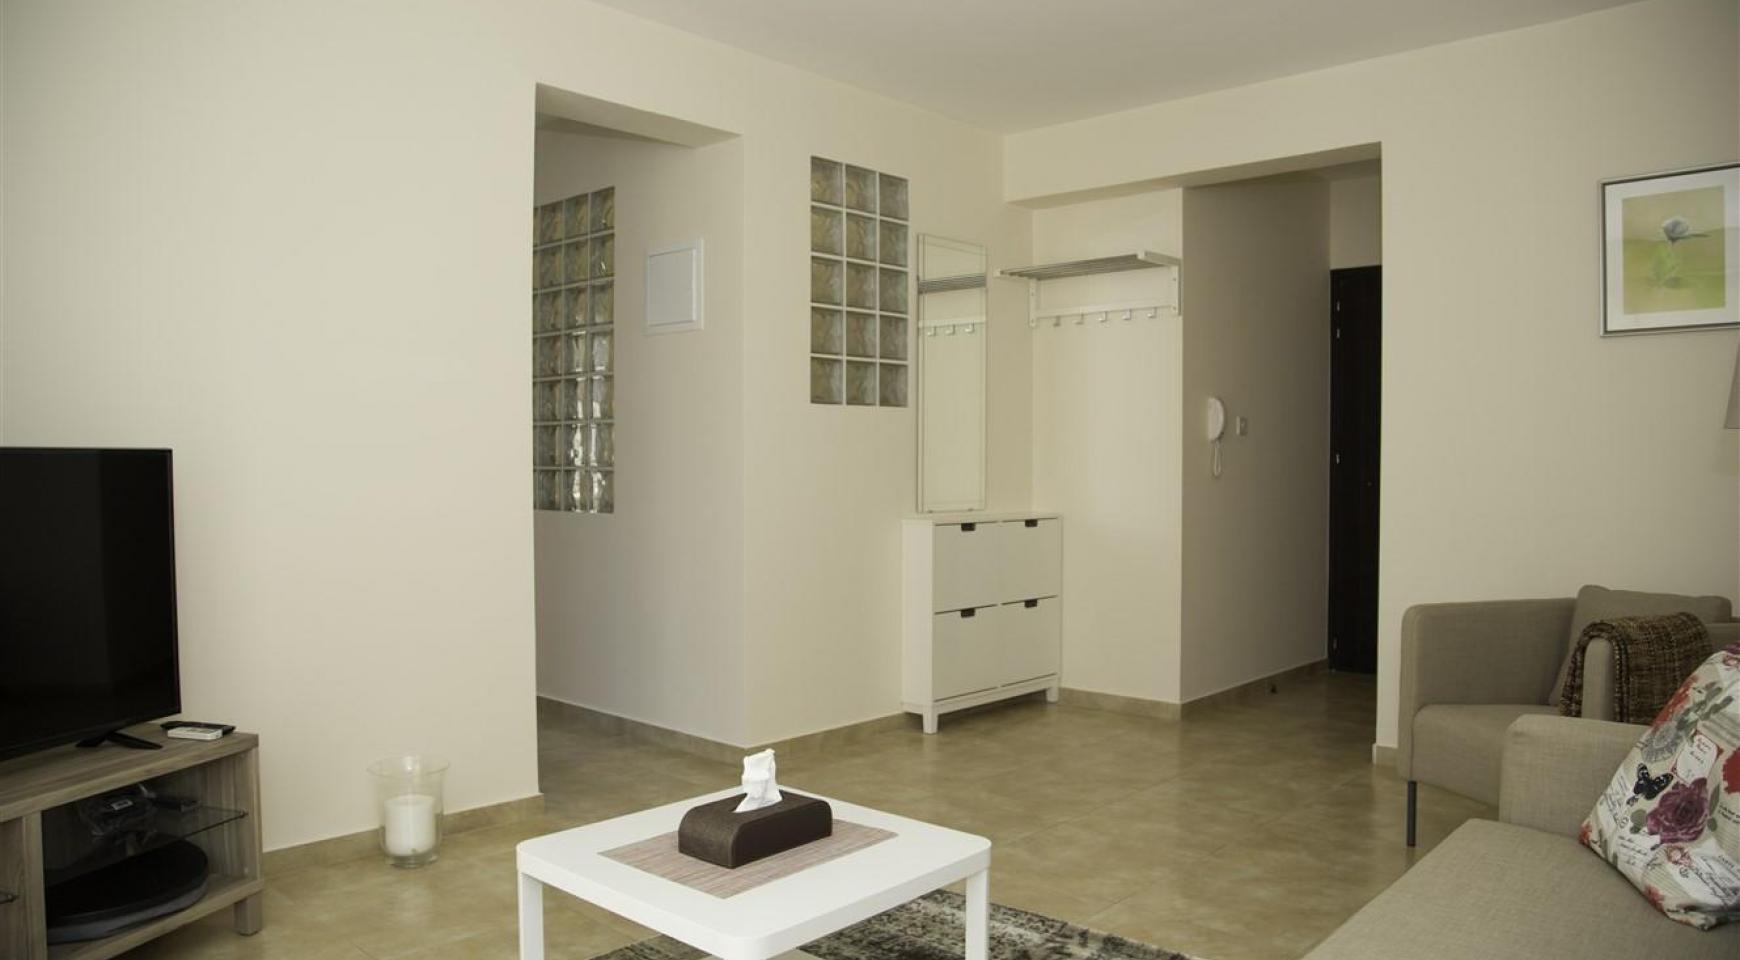 Luxury One Bedroom Apartment Frida 203 in the Tourist Area - 3